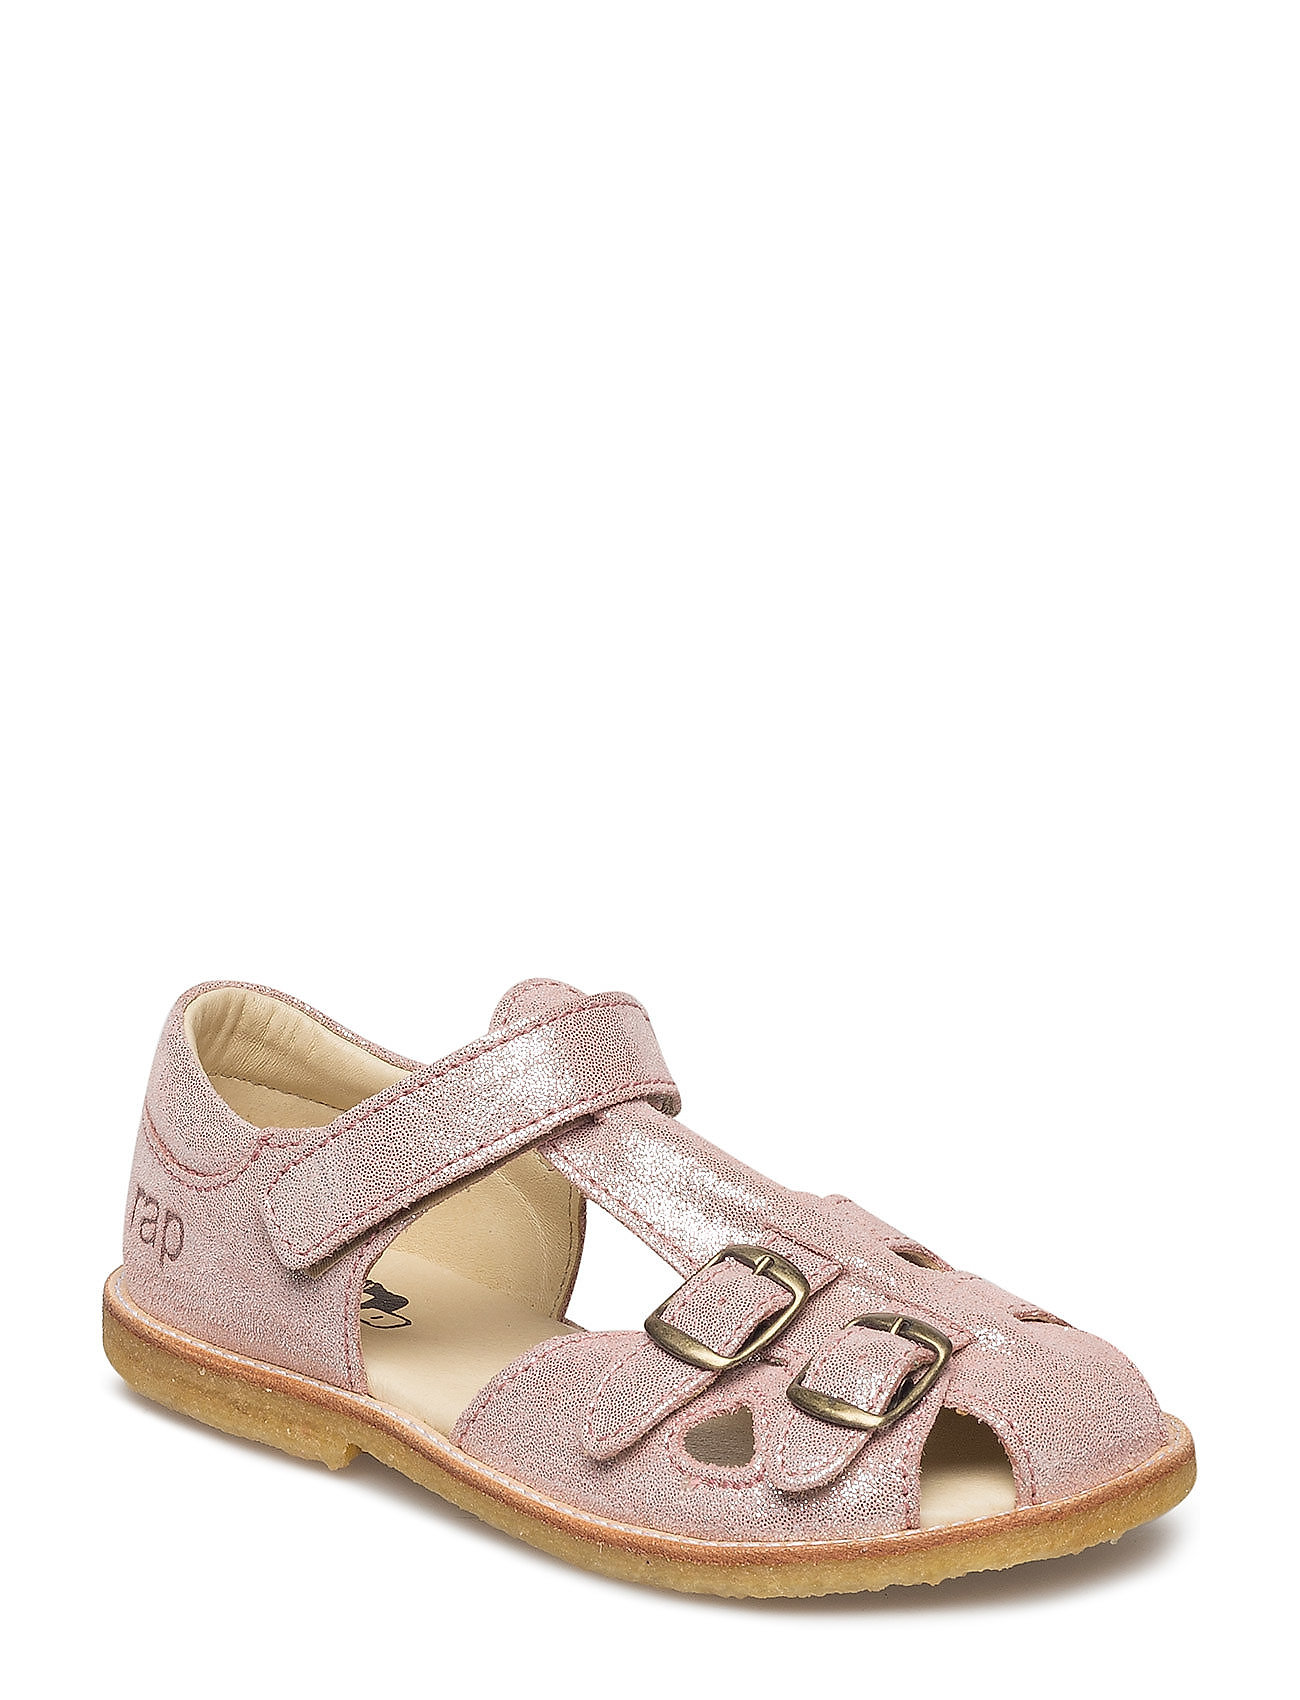 Ecological Closed Retro Sandal, Medium/Wide Fit thumbnail